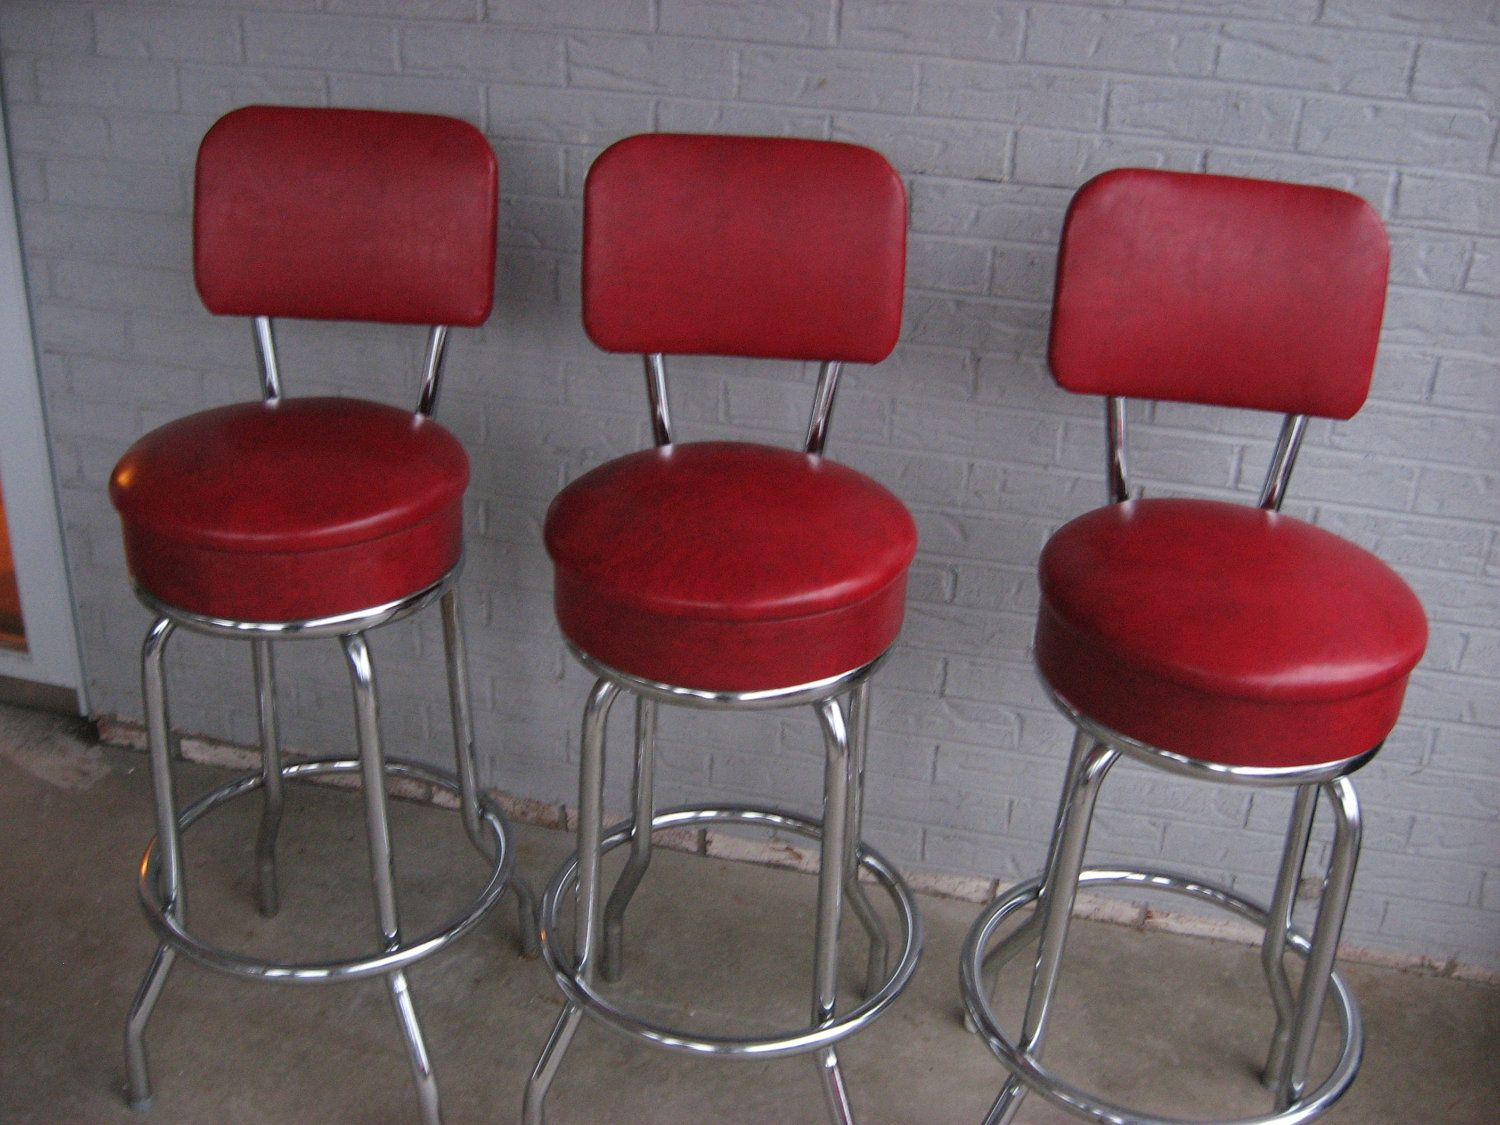 Three 3 vintage retro 1950s 1960s Red Bar Stools by TreasureHut & Best 25+ Red bar stools ideas on Pinterest | Red restaurant ... islam-shia.org